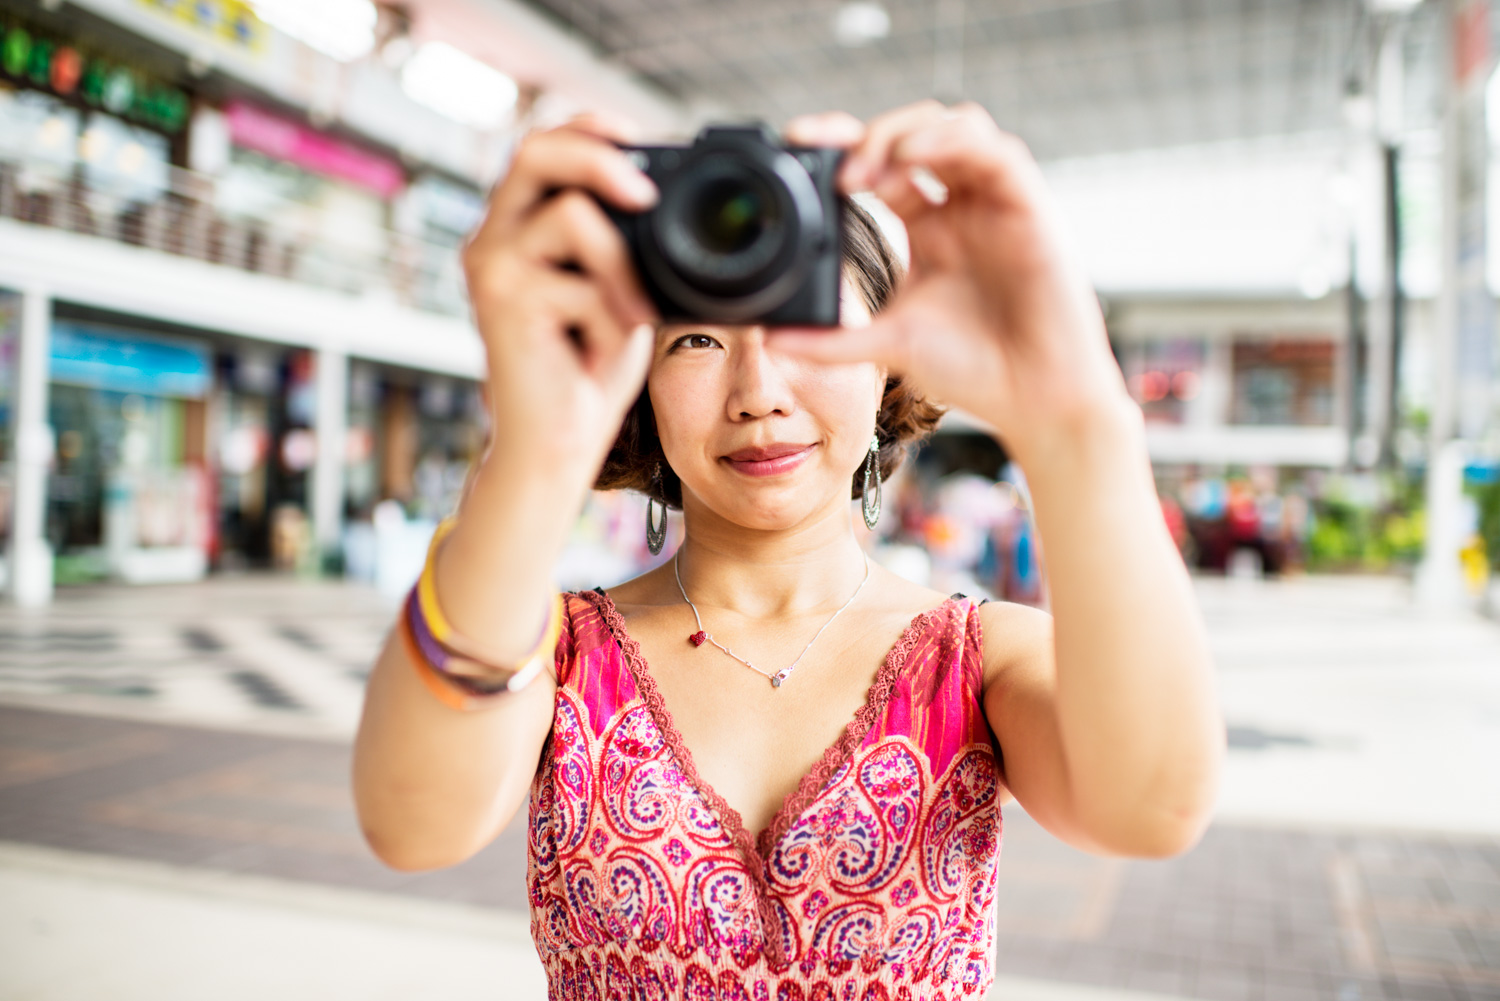 Woman Photographer at the Shopping Mall- Pros and Cons of Upgrading from a Phone to a Real Camera